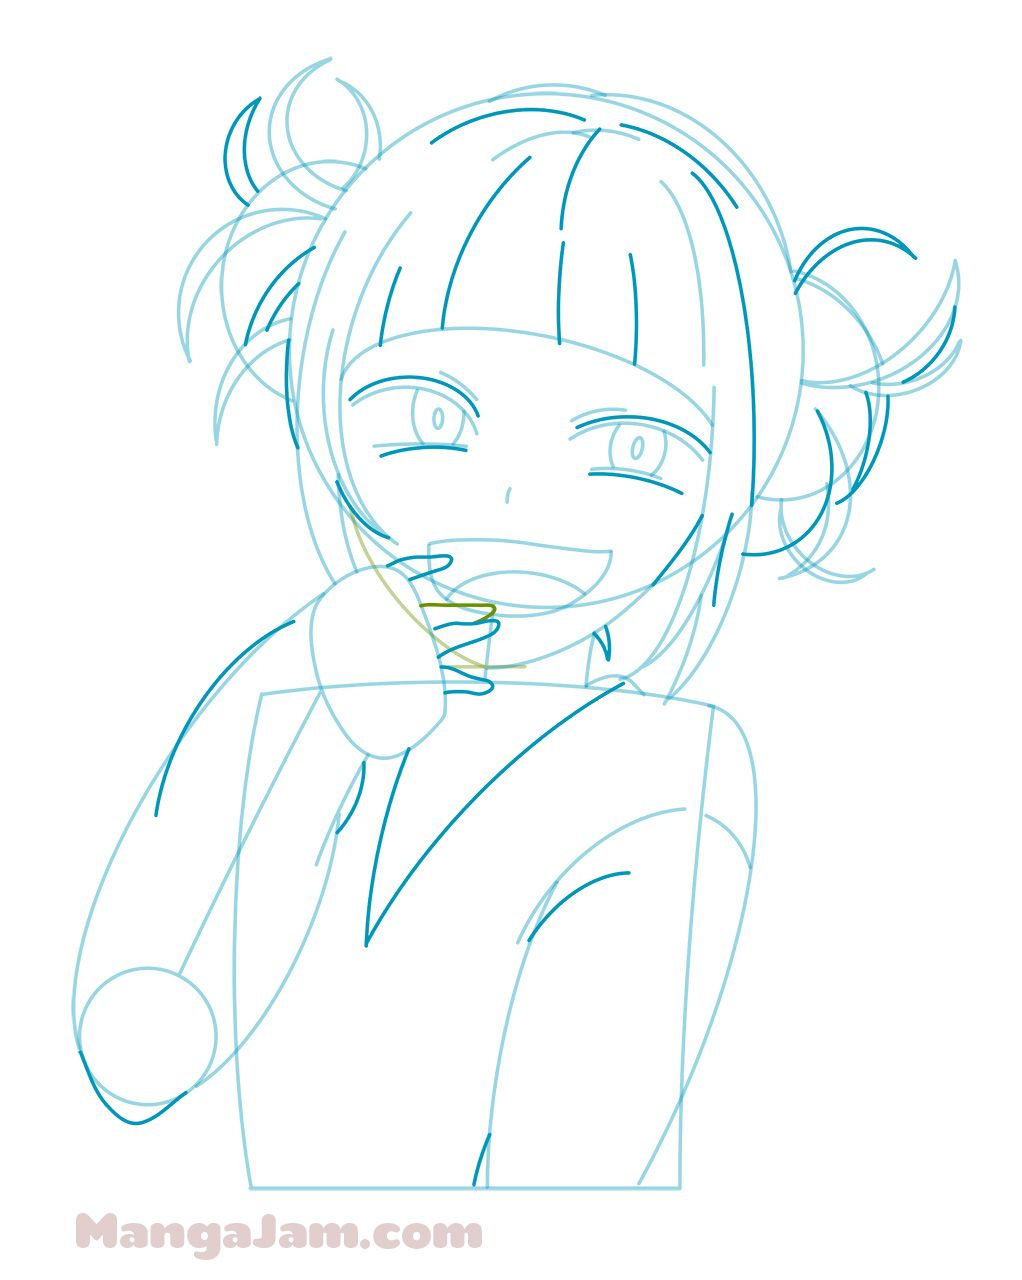 How To Draw Himiko Toga From My Hero Academia Mangajam Com Anime Character Drawing Drawings Anime Drawings Sketches